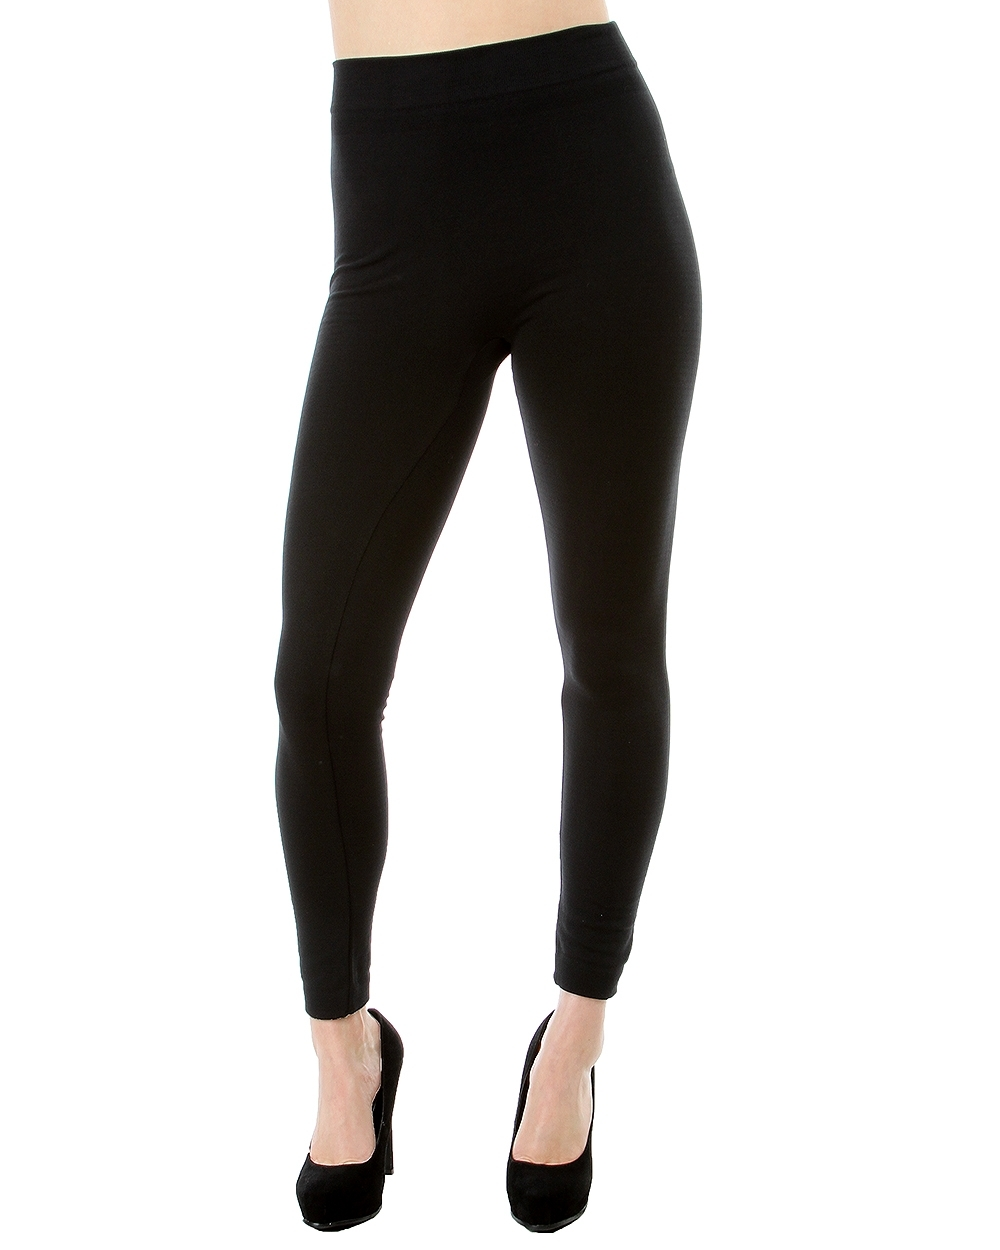 fleece leggings black plus size fleece lined leggings IHVTQXP